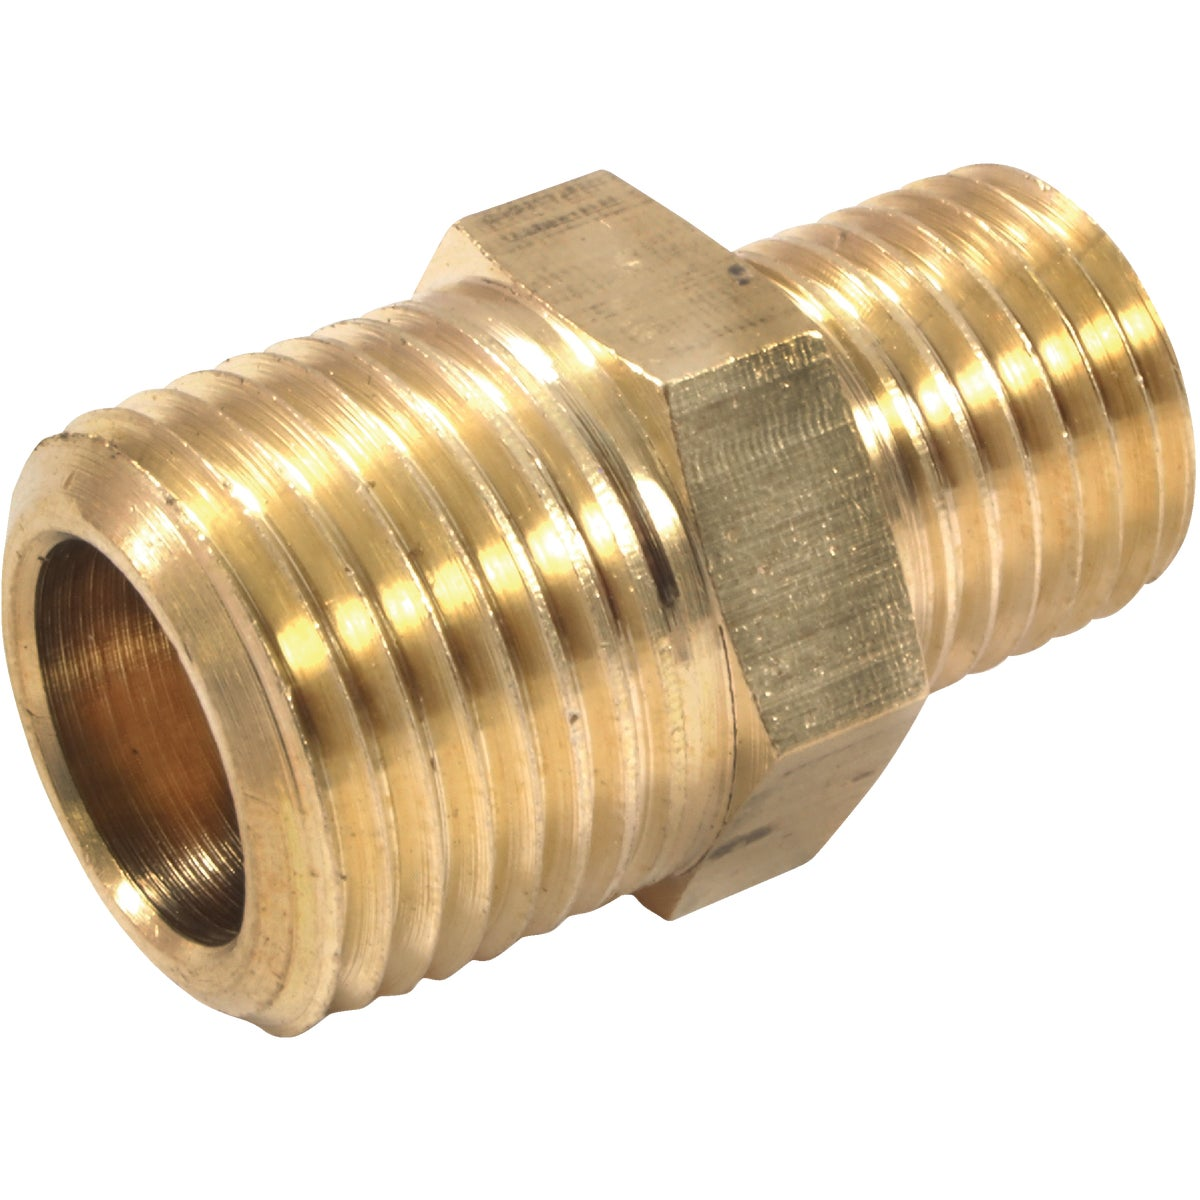 "3/8"" MNPT REDUCR ADAPTER - 75533 by Forney Industries"